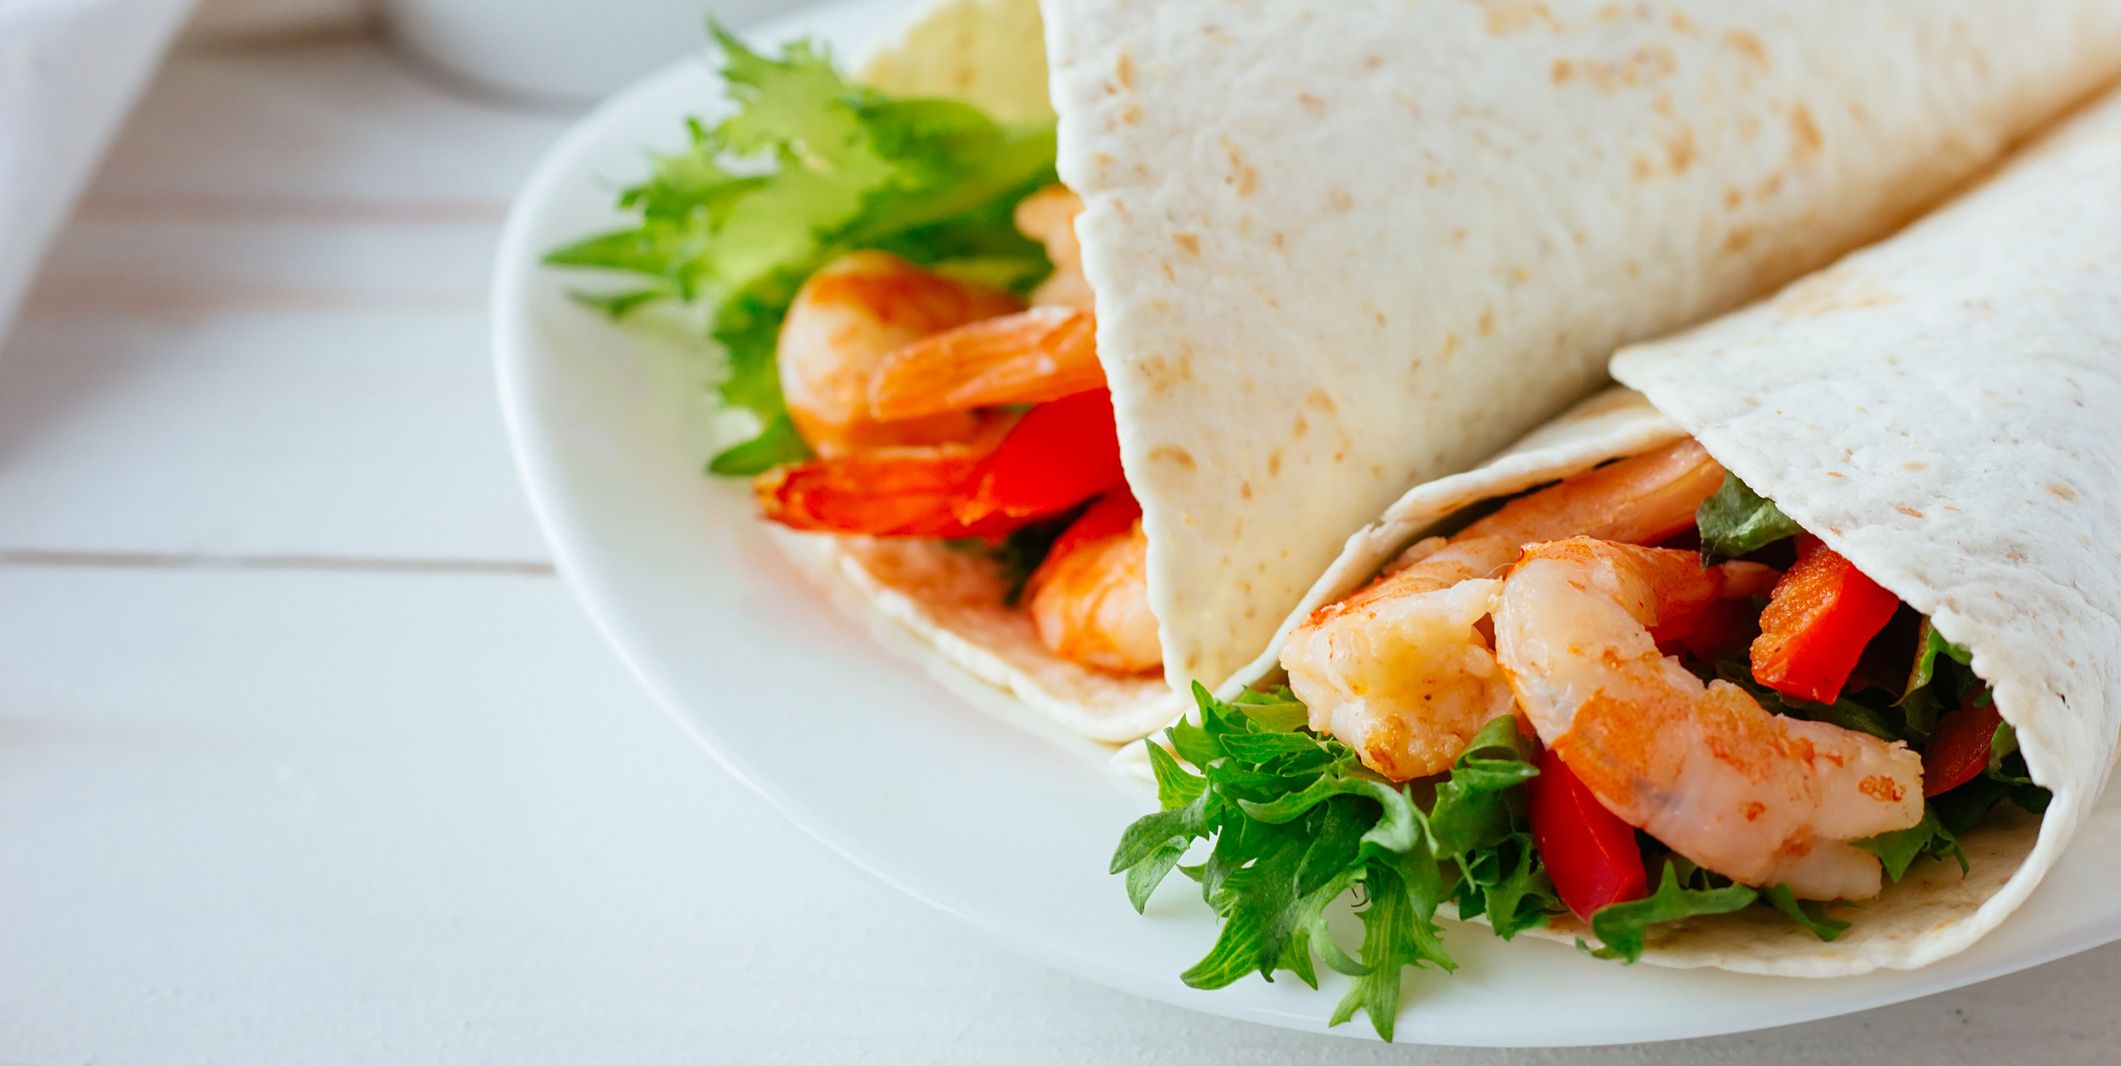 Tortilla with shrimps and salad